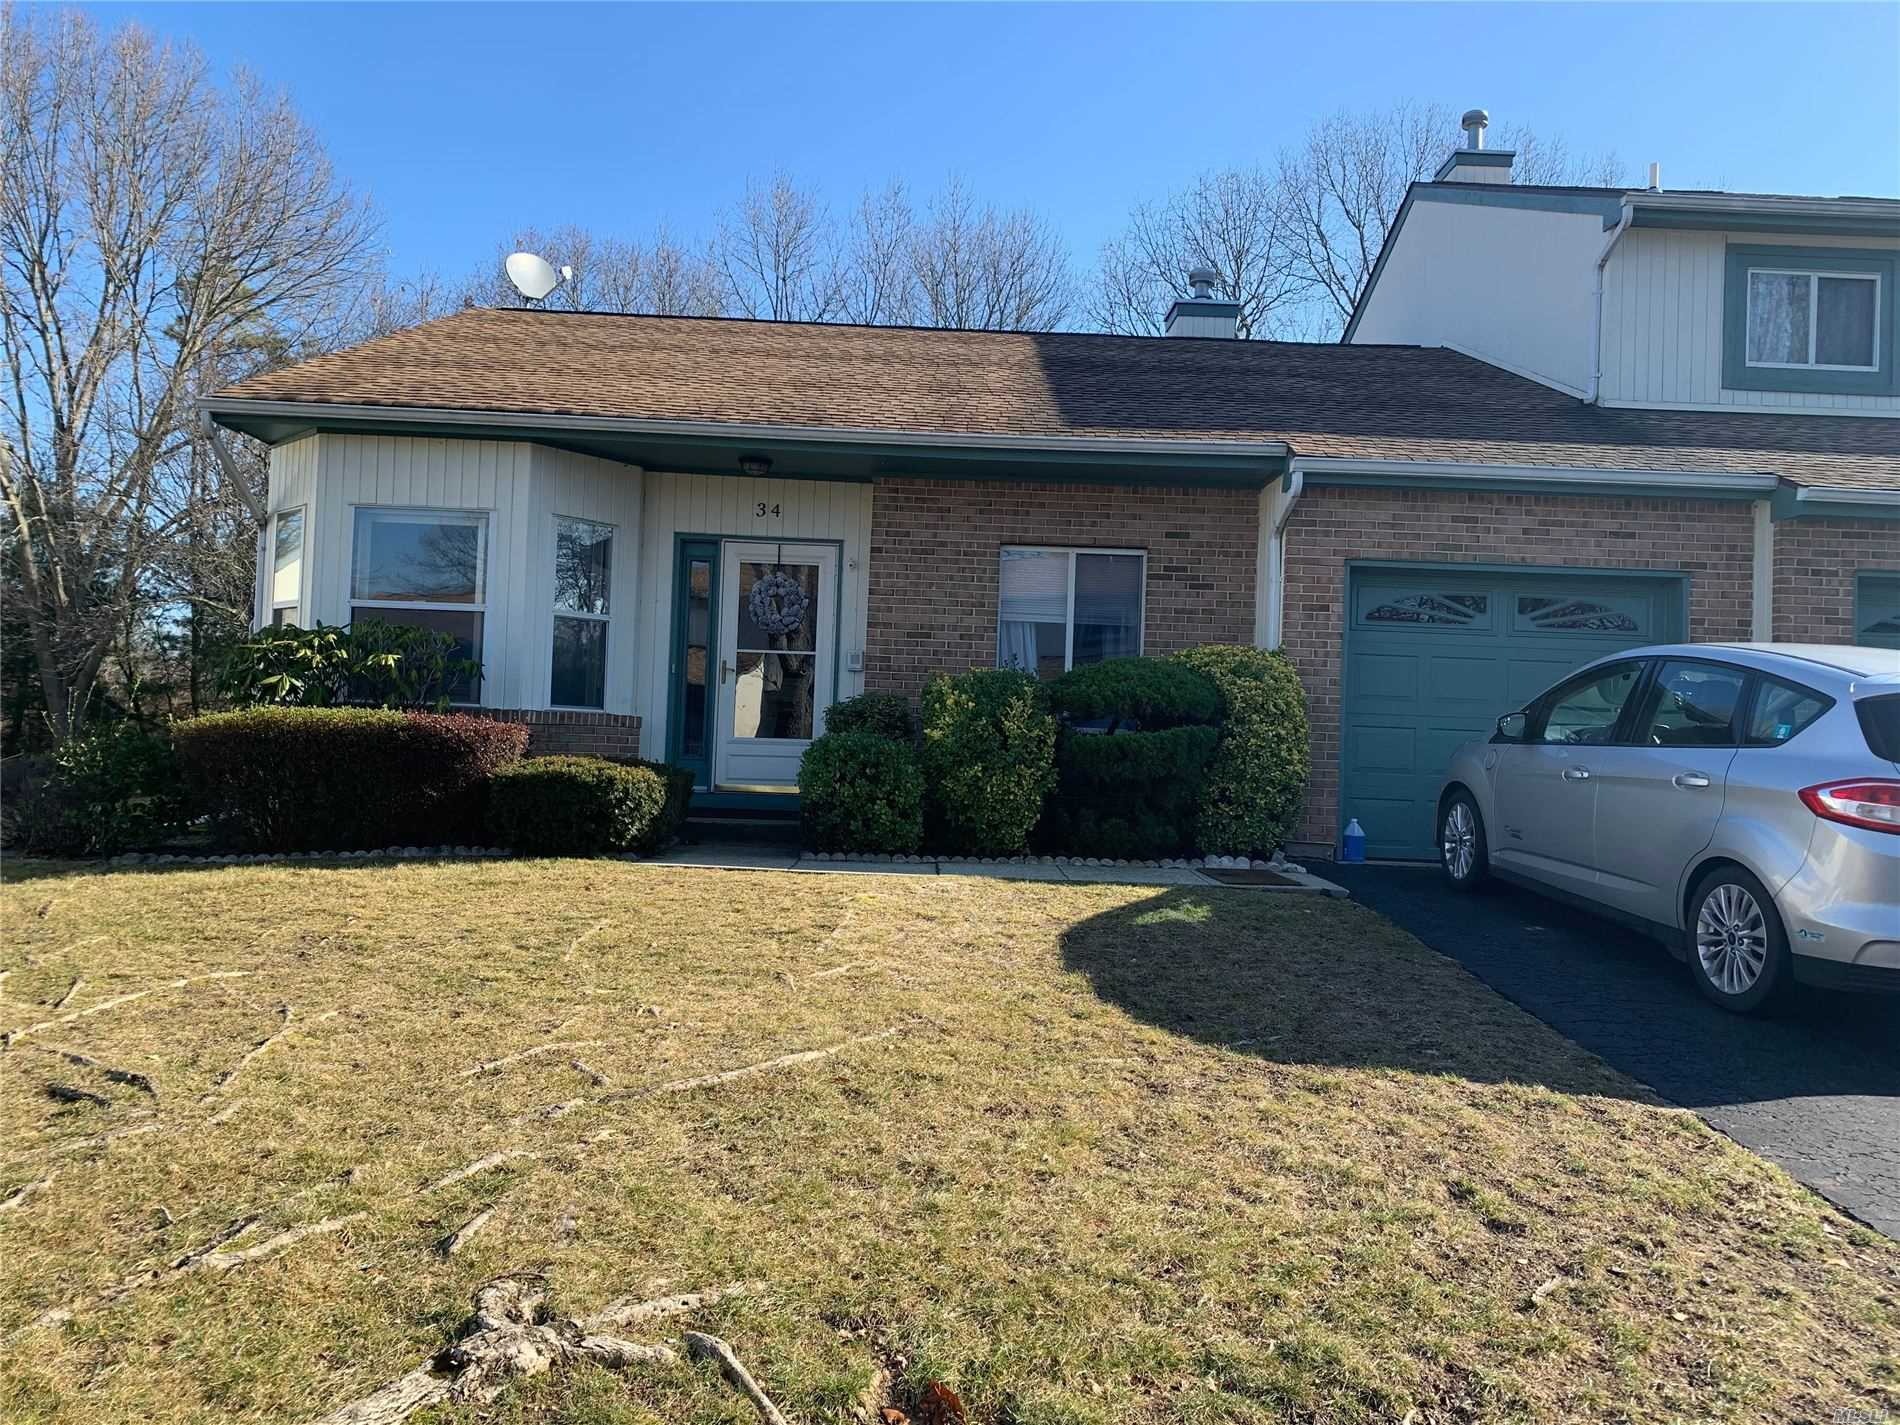 Property for sale at 34 Timber Ridge Drive, Holtsville NY 11742, Holtsville,  New York 11742